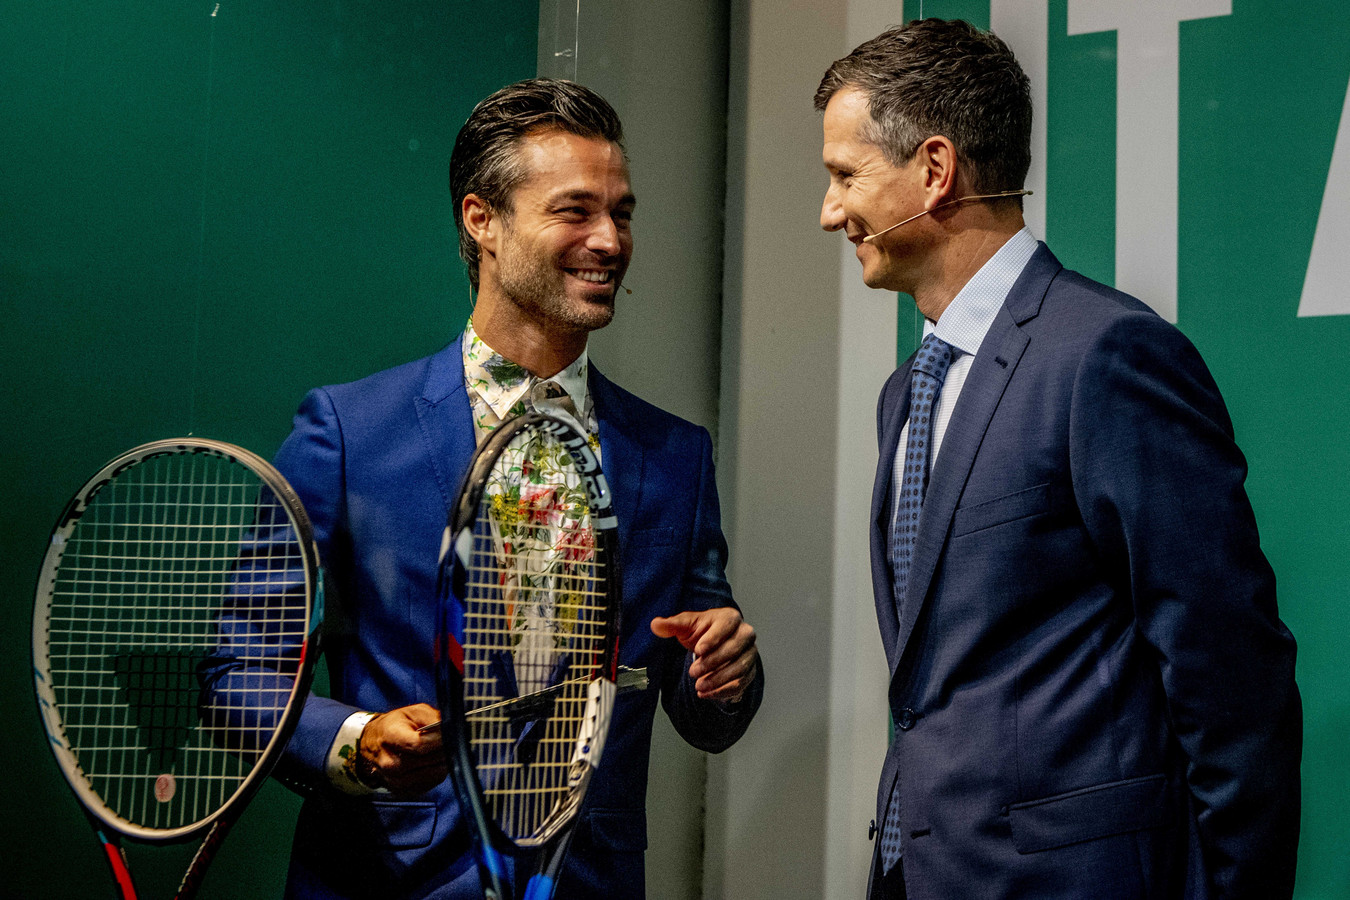 Jan Kooijman en Richard Krajicek tijdens de loting voor het ABN AMRO World Tennis Tournament.